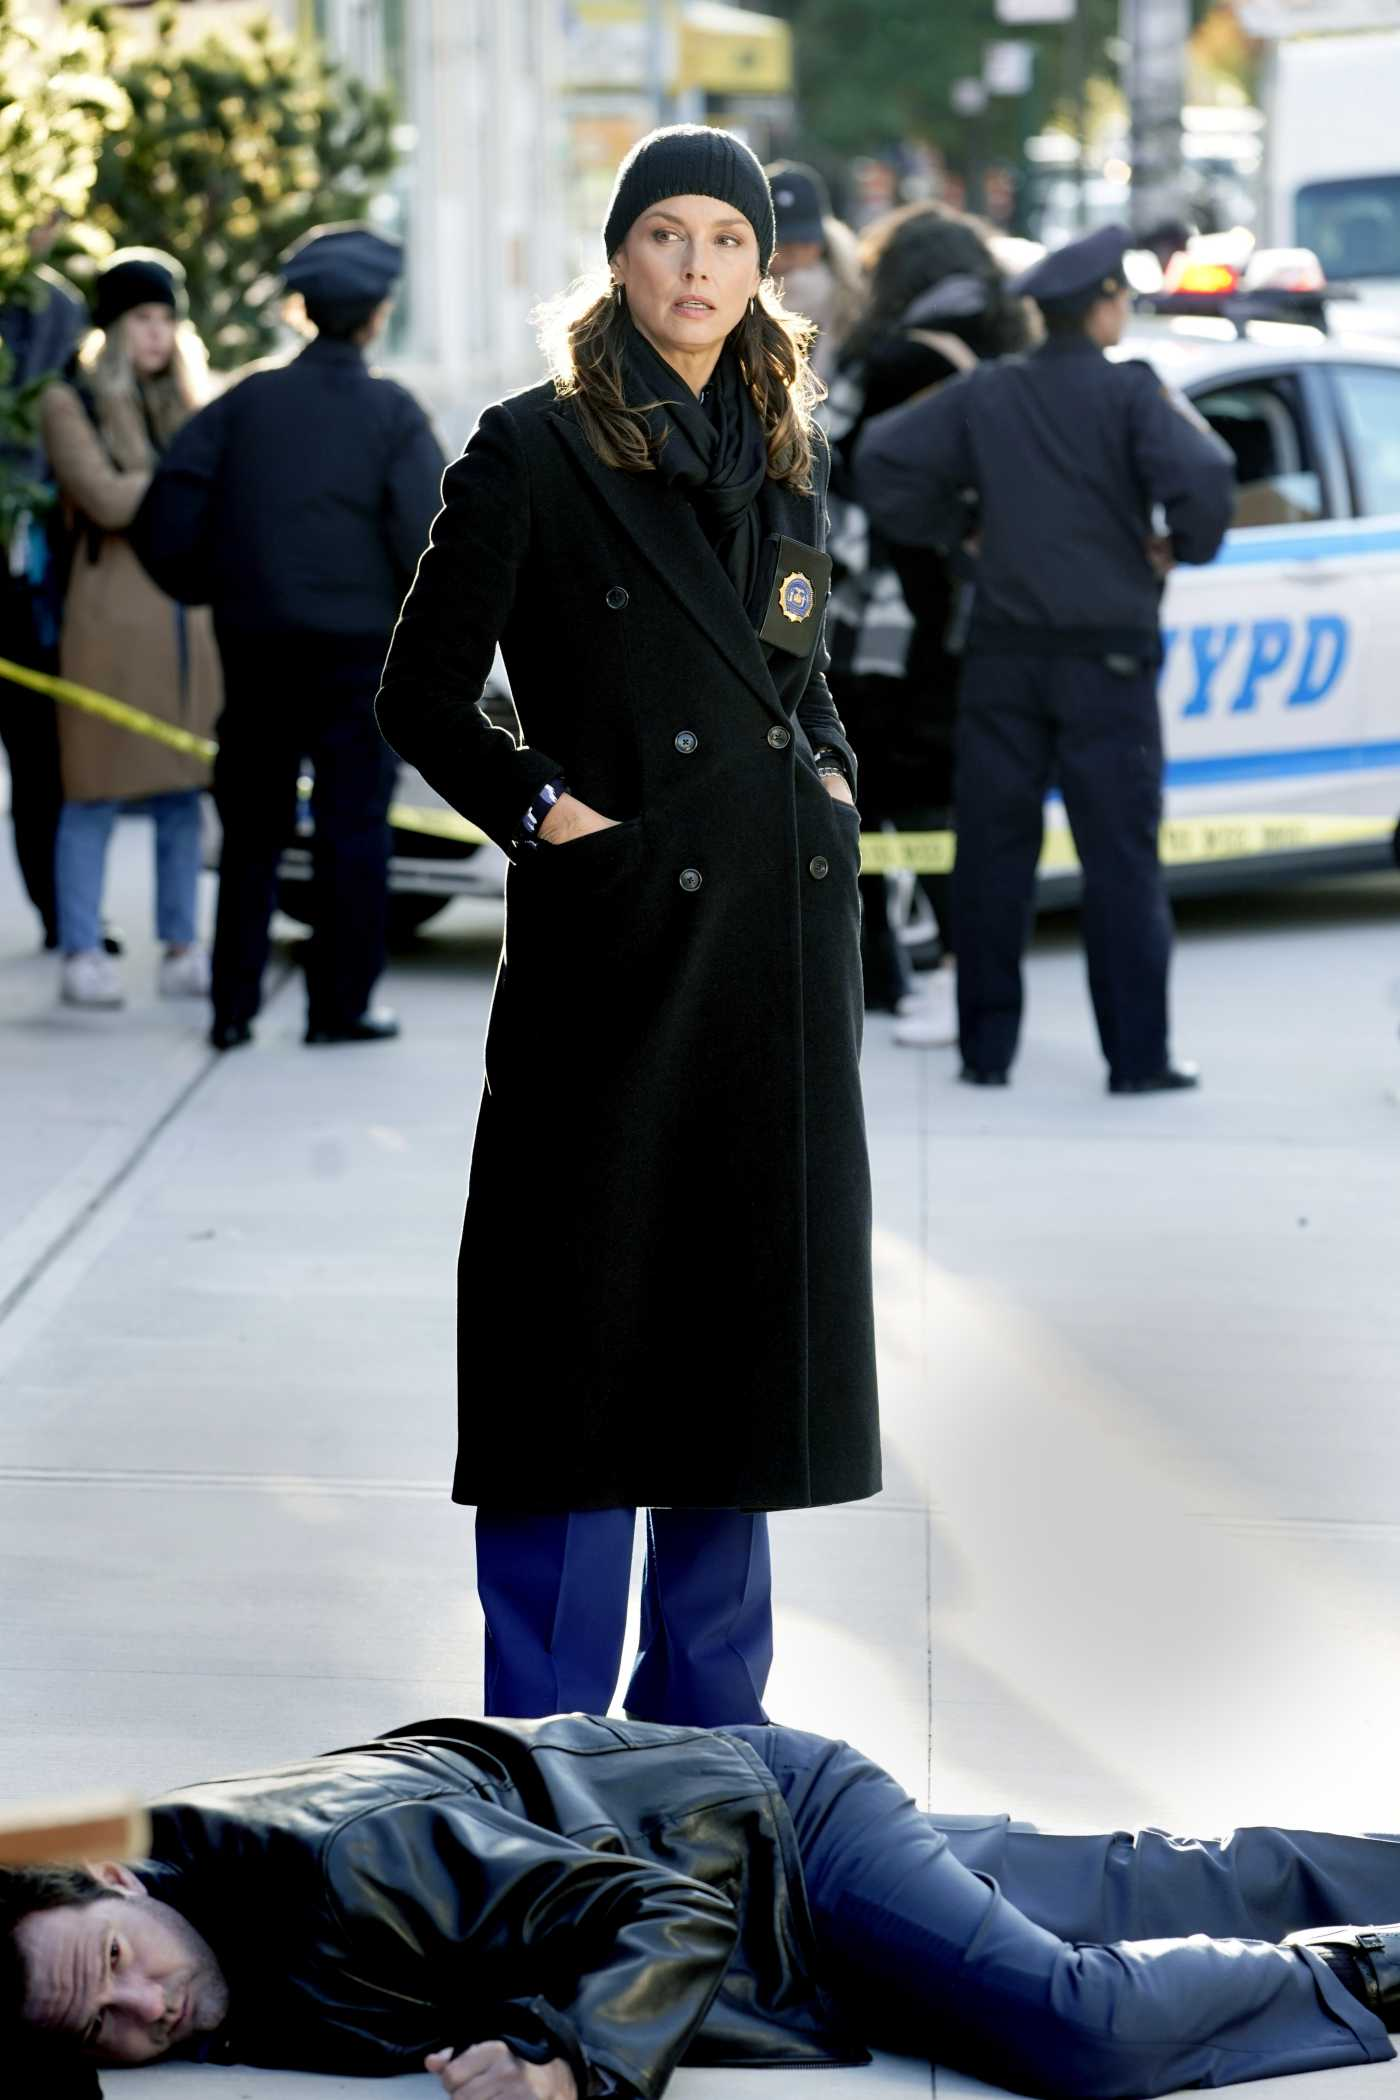 Bridget Moynahan in a Black Coat on the Set of the Blue Bloods in Brooklyn, NYC 11/04/2020